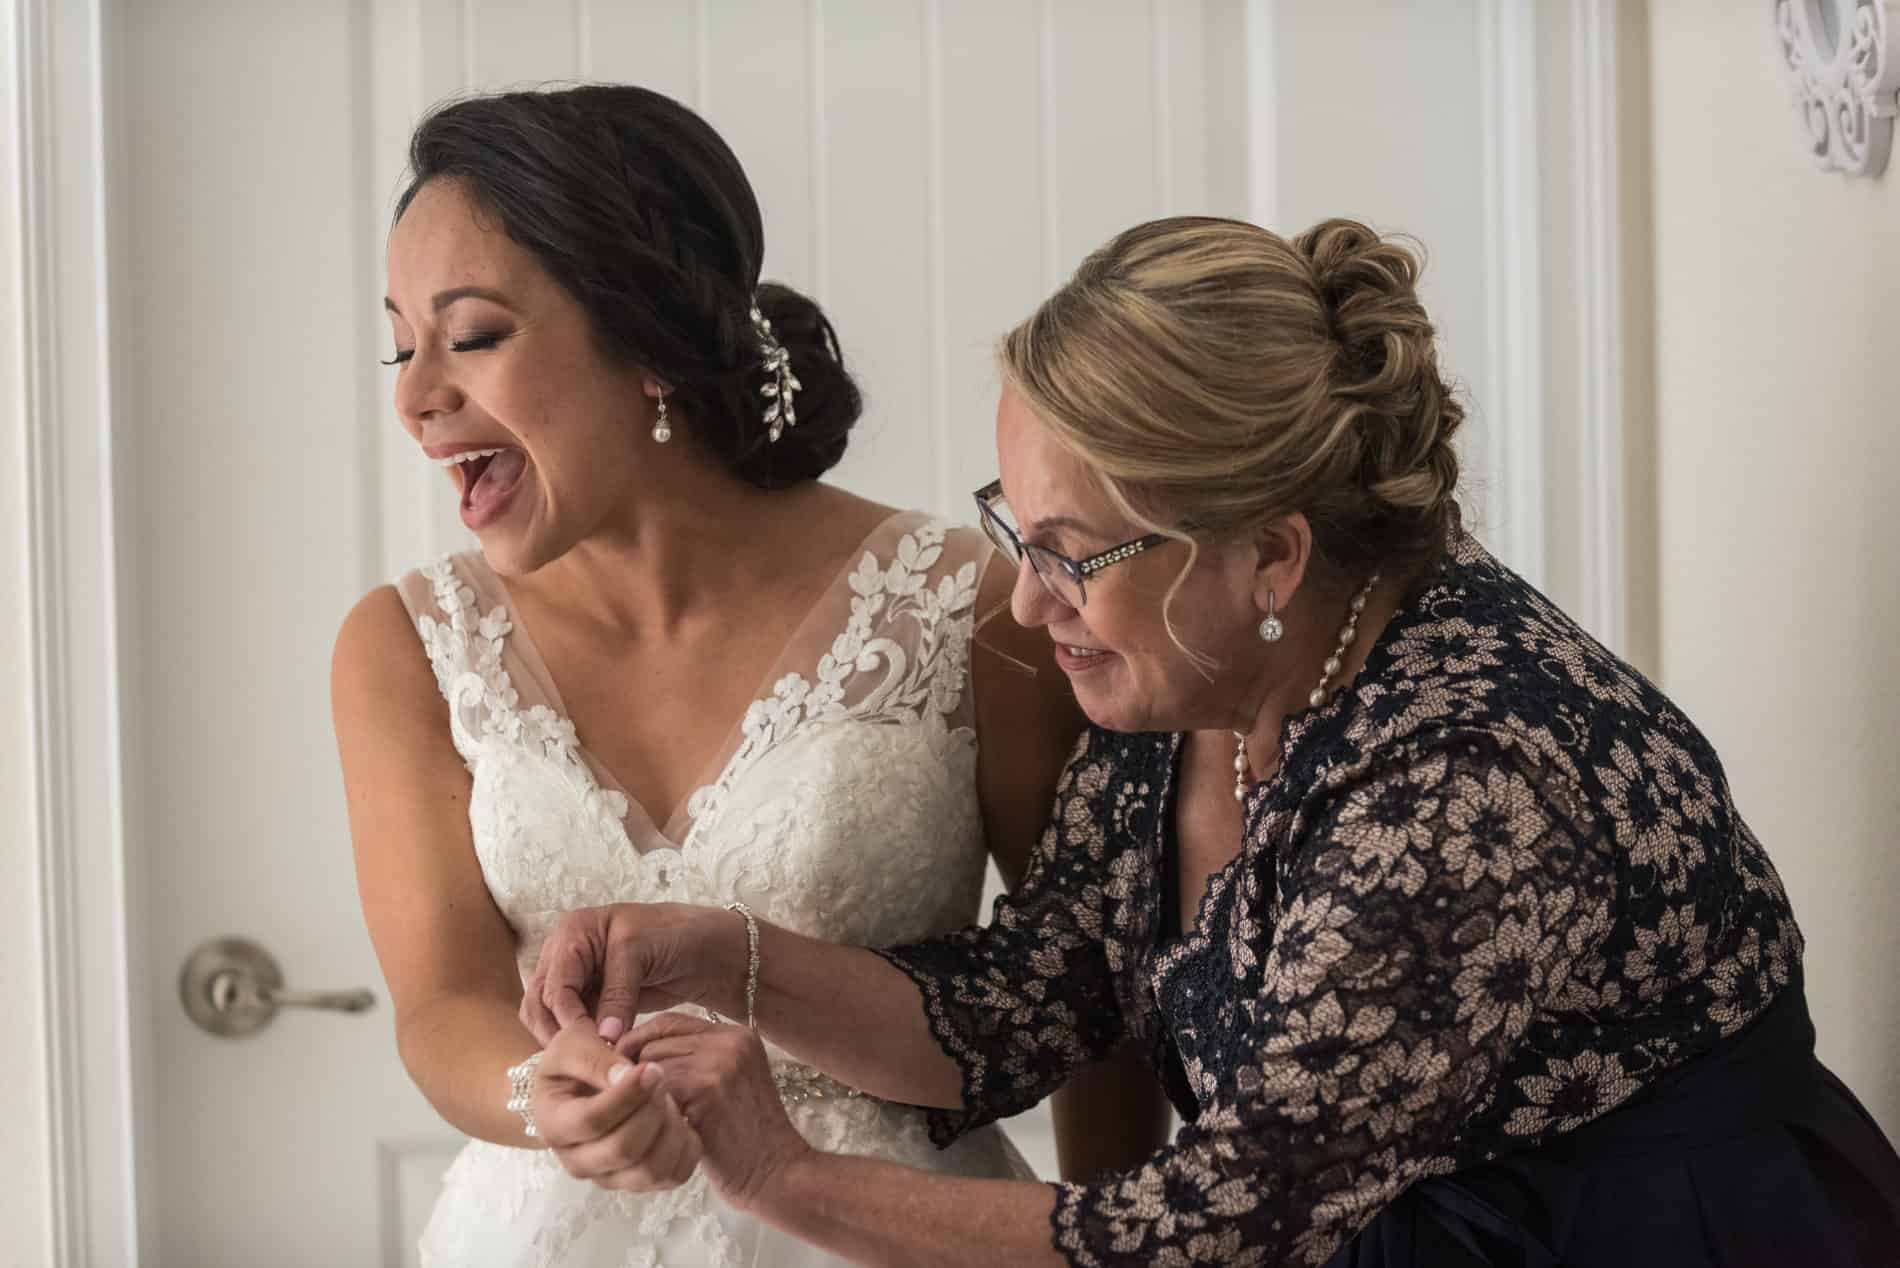 Bride and her mother share a emotional funny moment